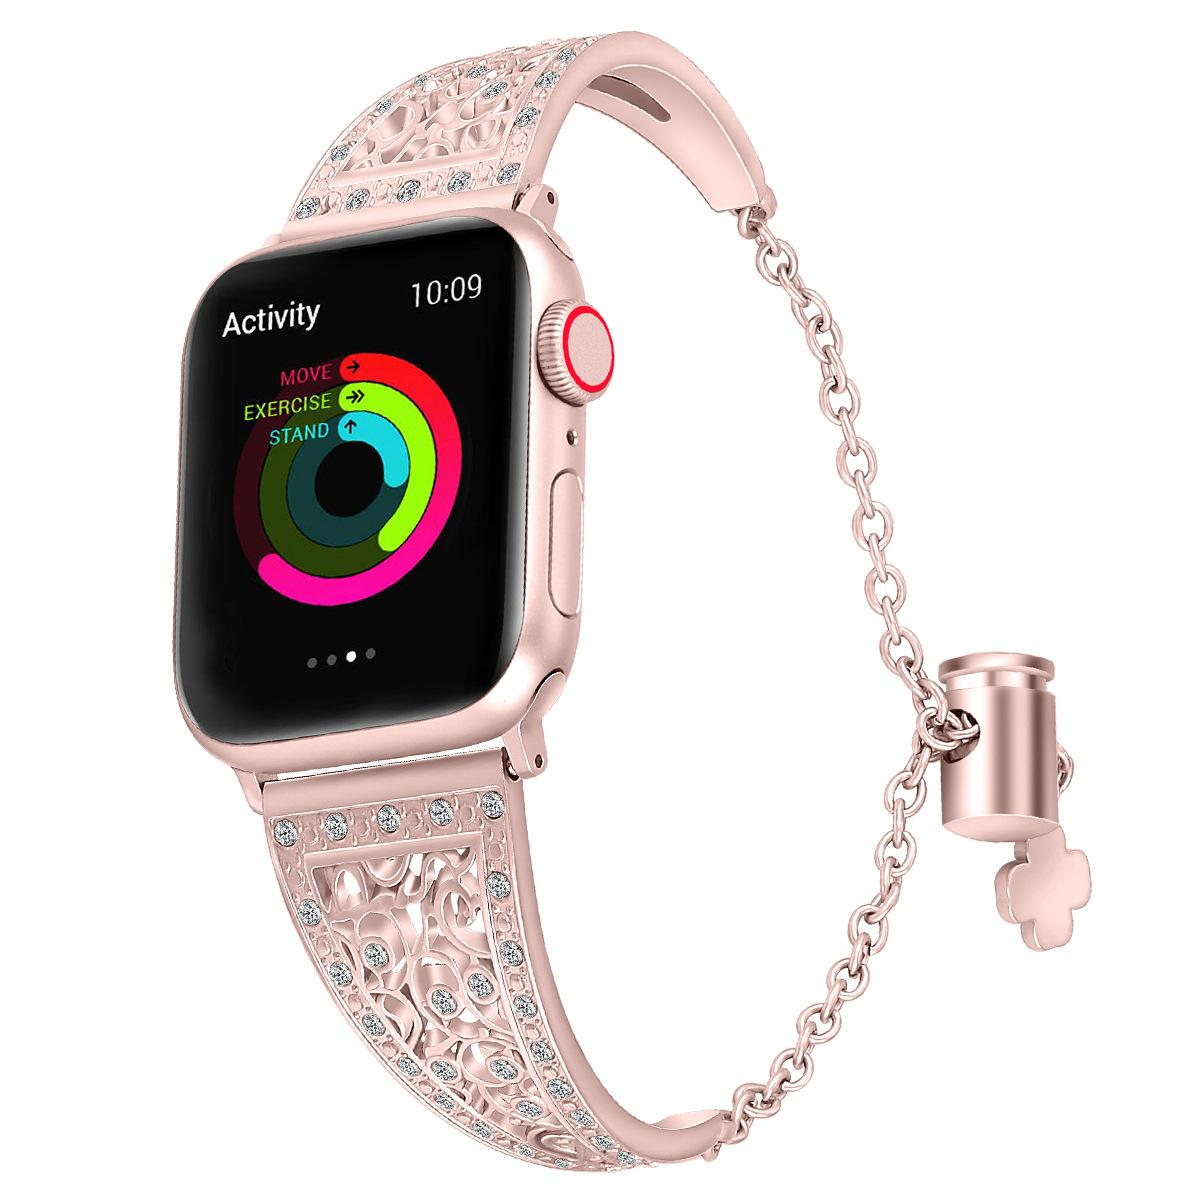 Women diamond bracelet watch Strap For Apple Watch Series 1/2/3/4/5 Metal Stainless Steel Band for iwatch 38/40/42/44mm metal watch straps